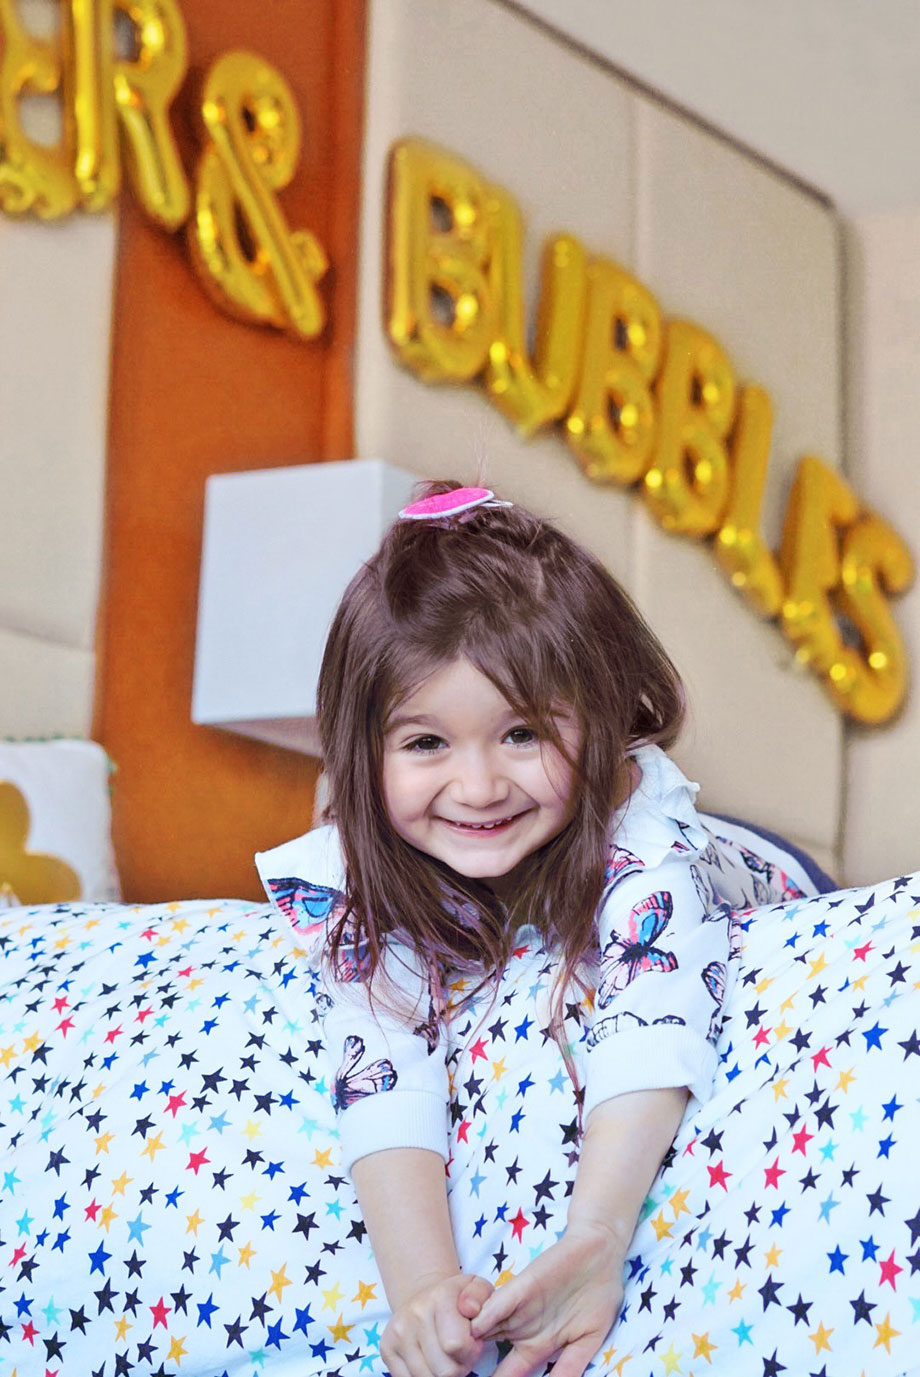 Zelda of Glitter and Bubbles takes the Kids Suite at the Swissotel.